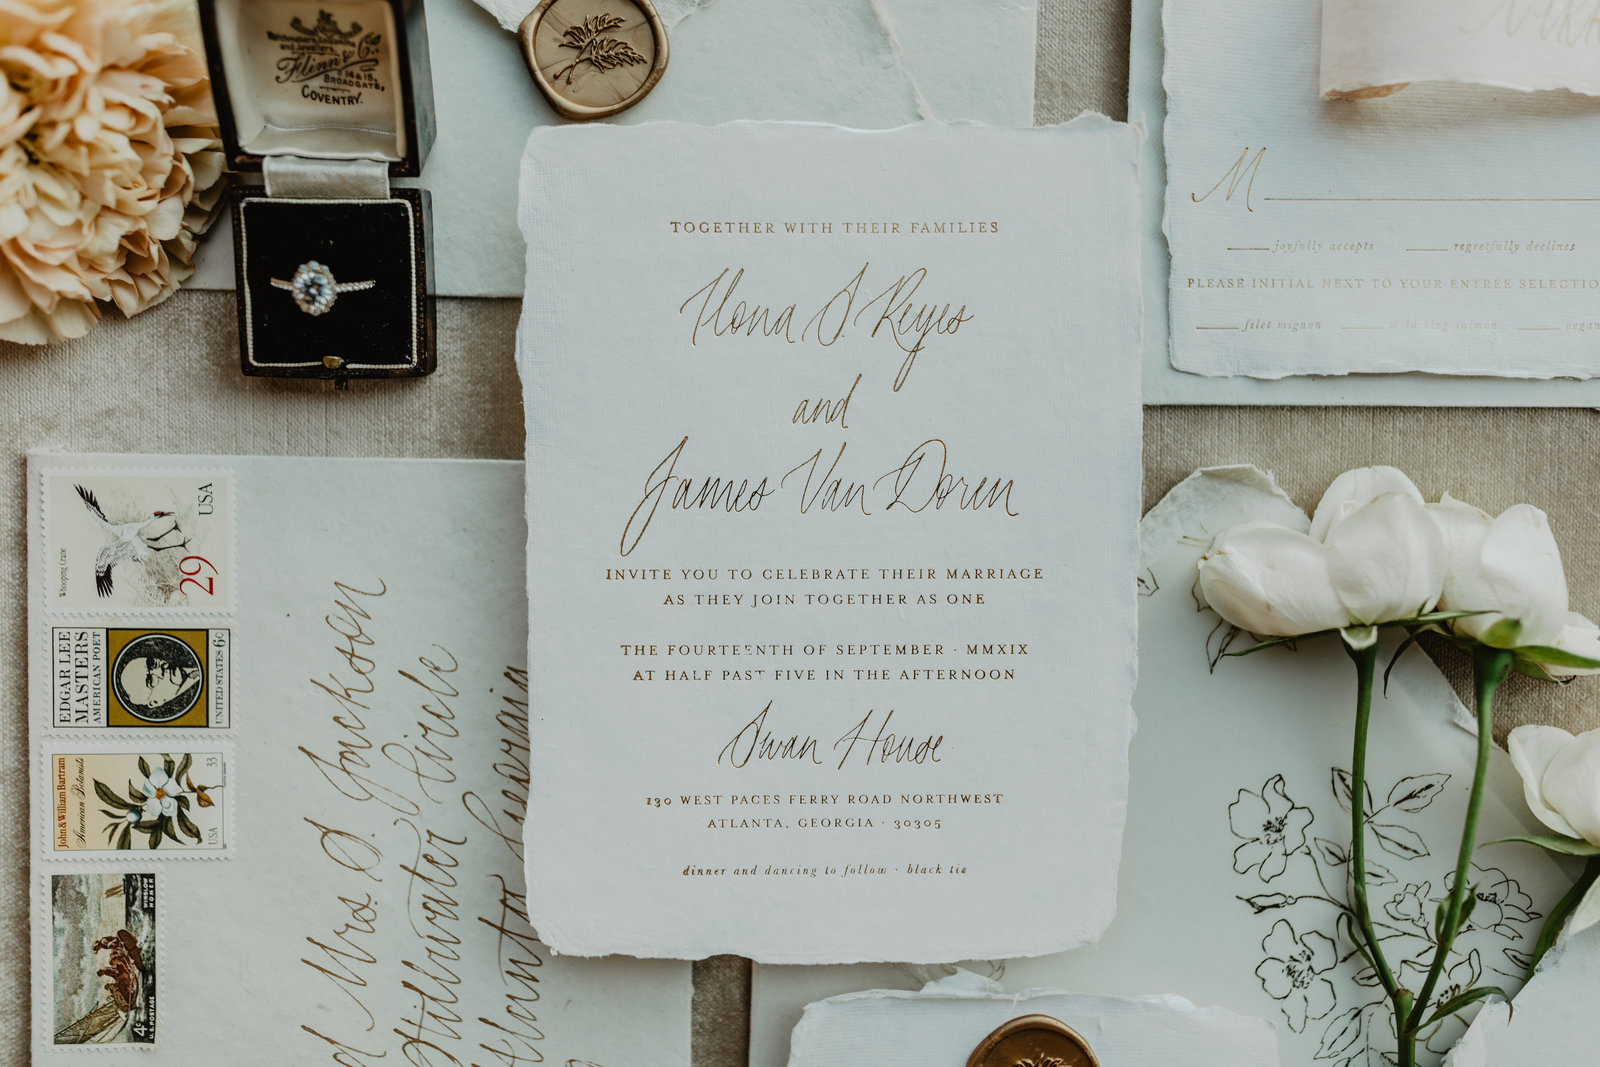 Modern meets old world invitation suite design.